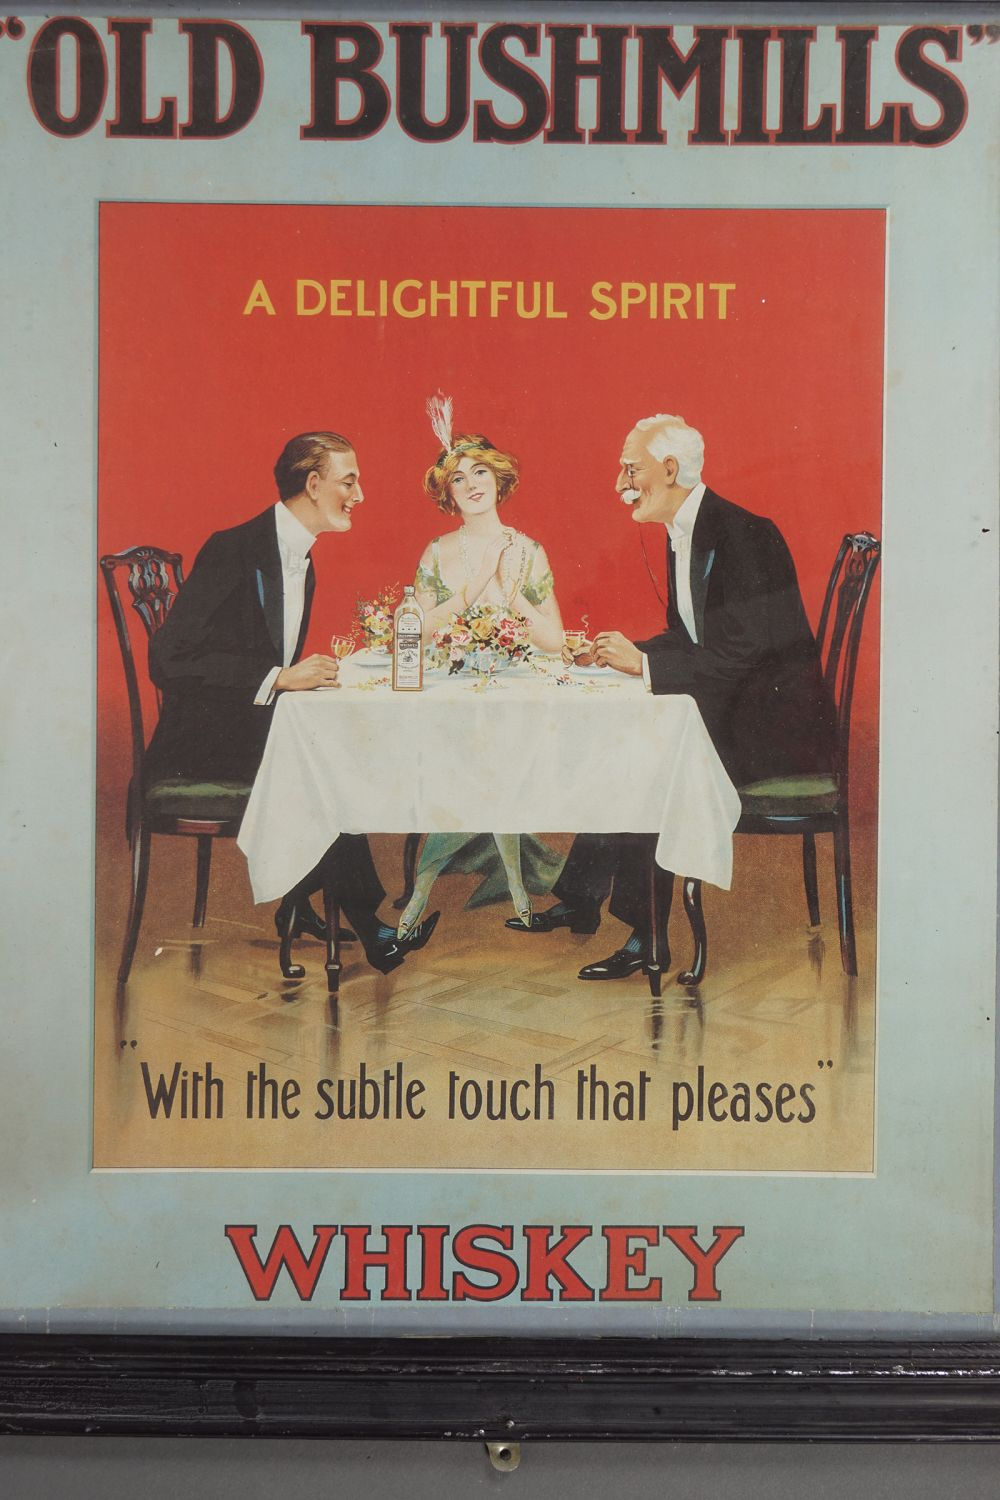 OLD BUSHMILLS WHISKEY POSTER - Image 2 of 2